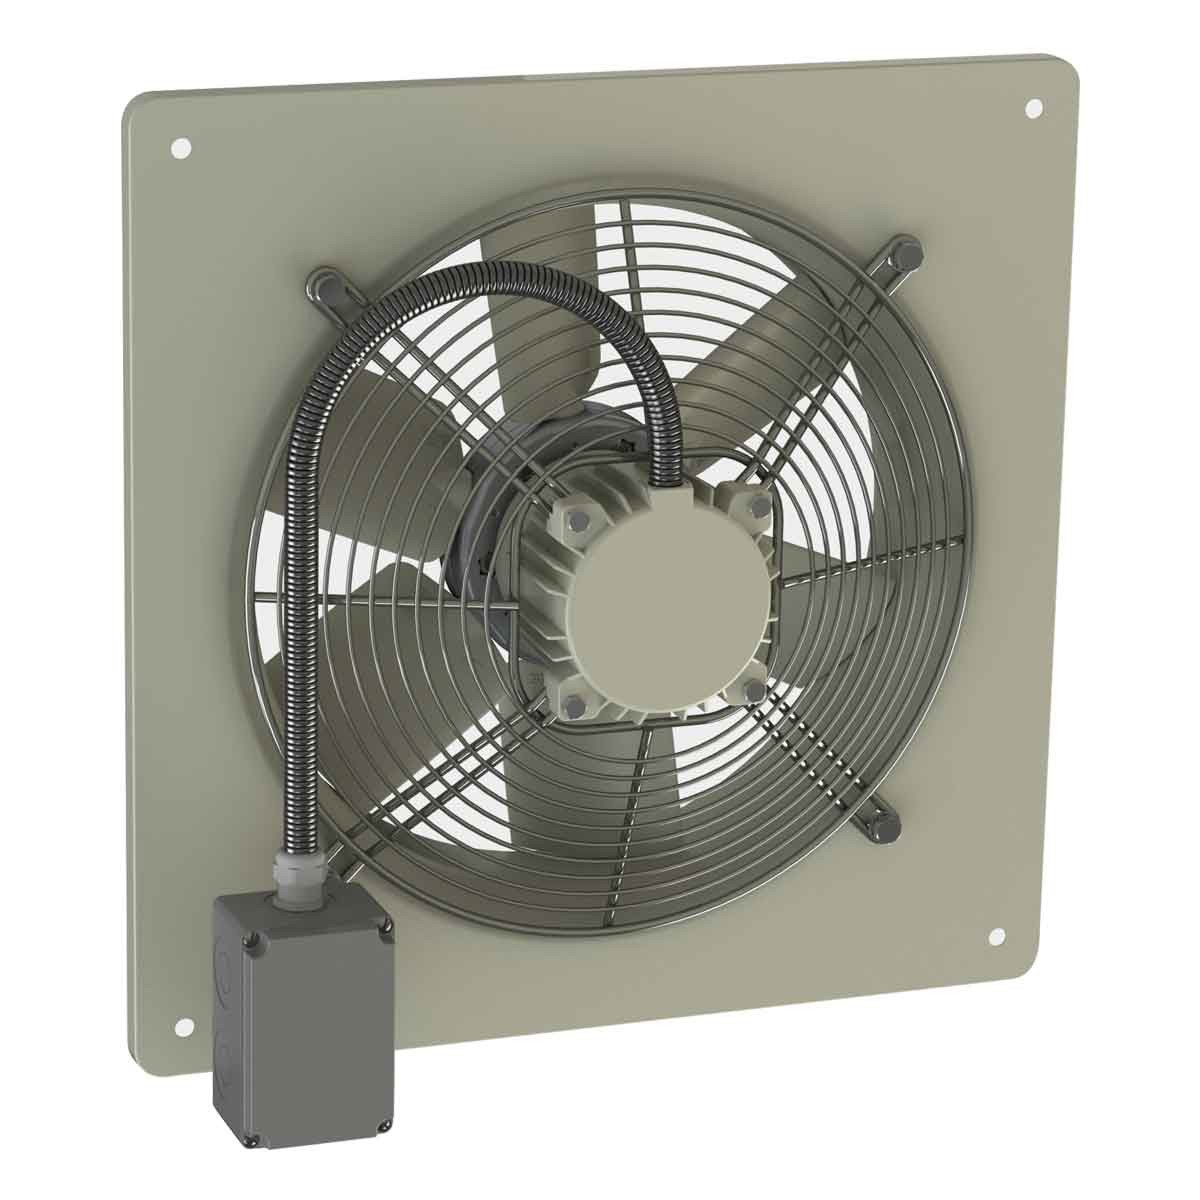 Roof Units Plate Fans All Roof Solutions